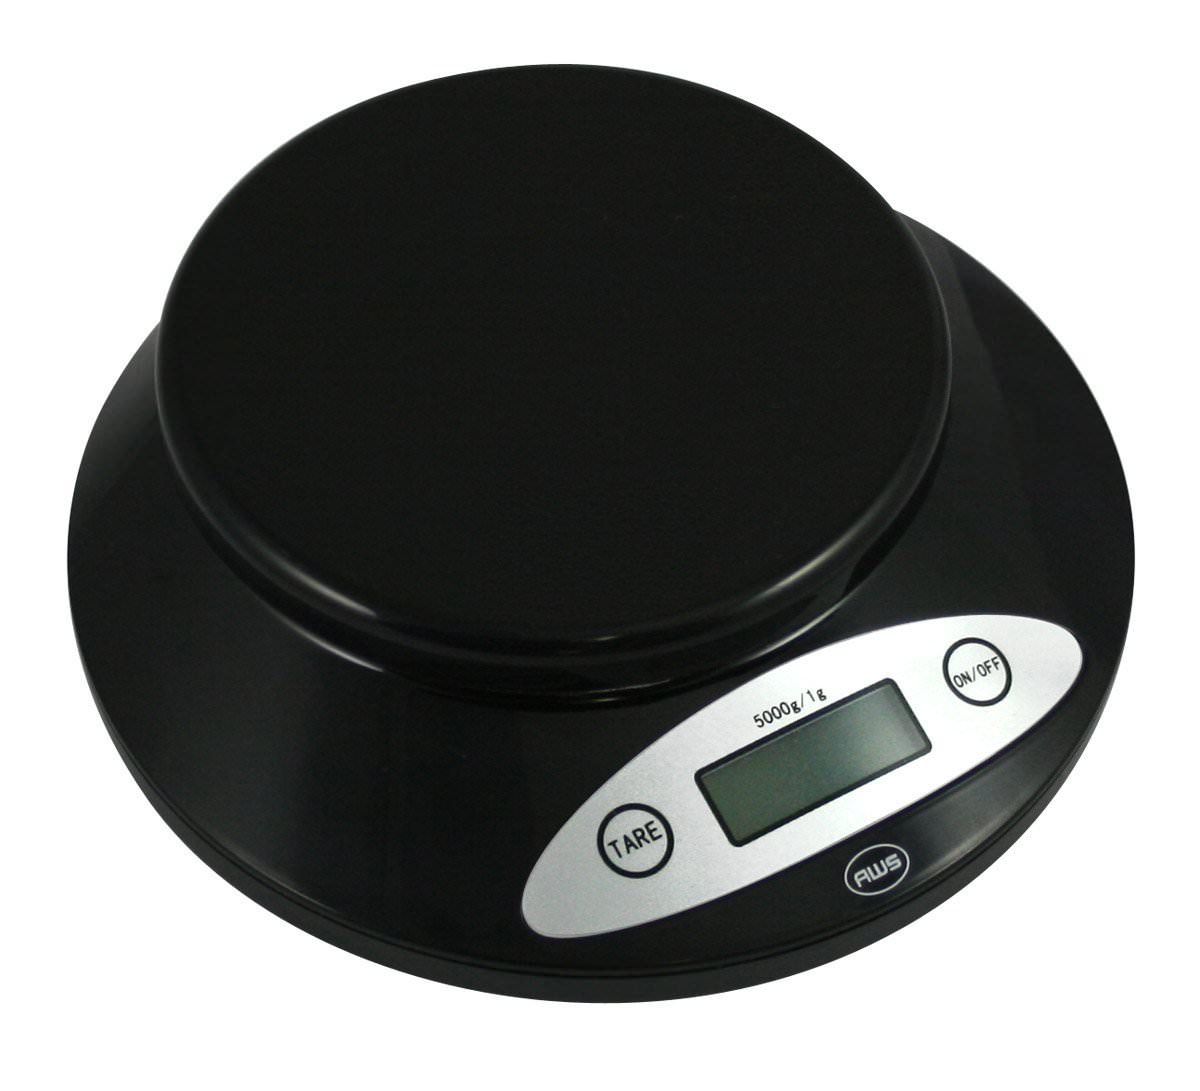 American Weigh Scales 5KBOWL-BK Digital Kitchen Scale Black